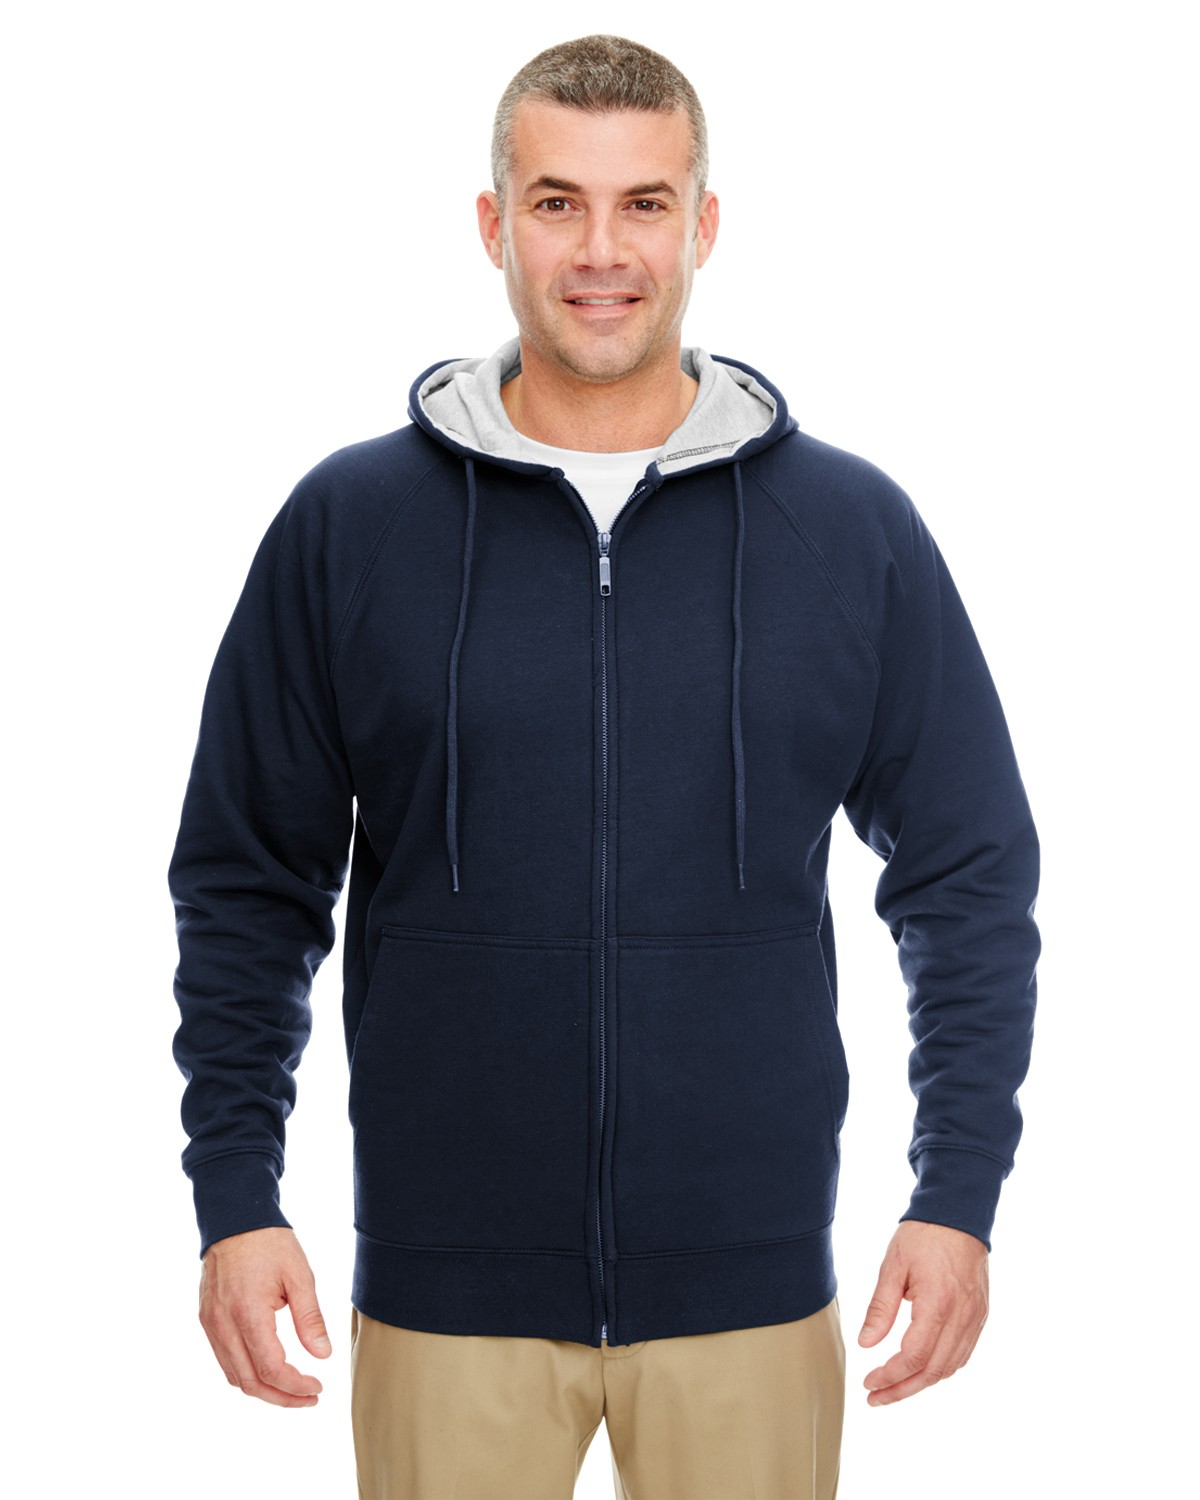 8463 UltraClub NAVY/HTHR GRY